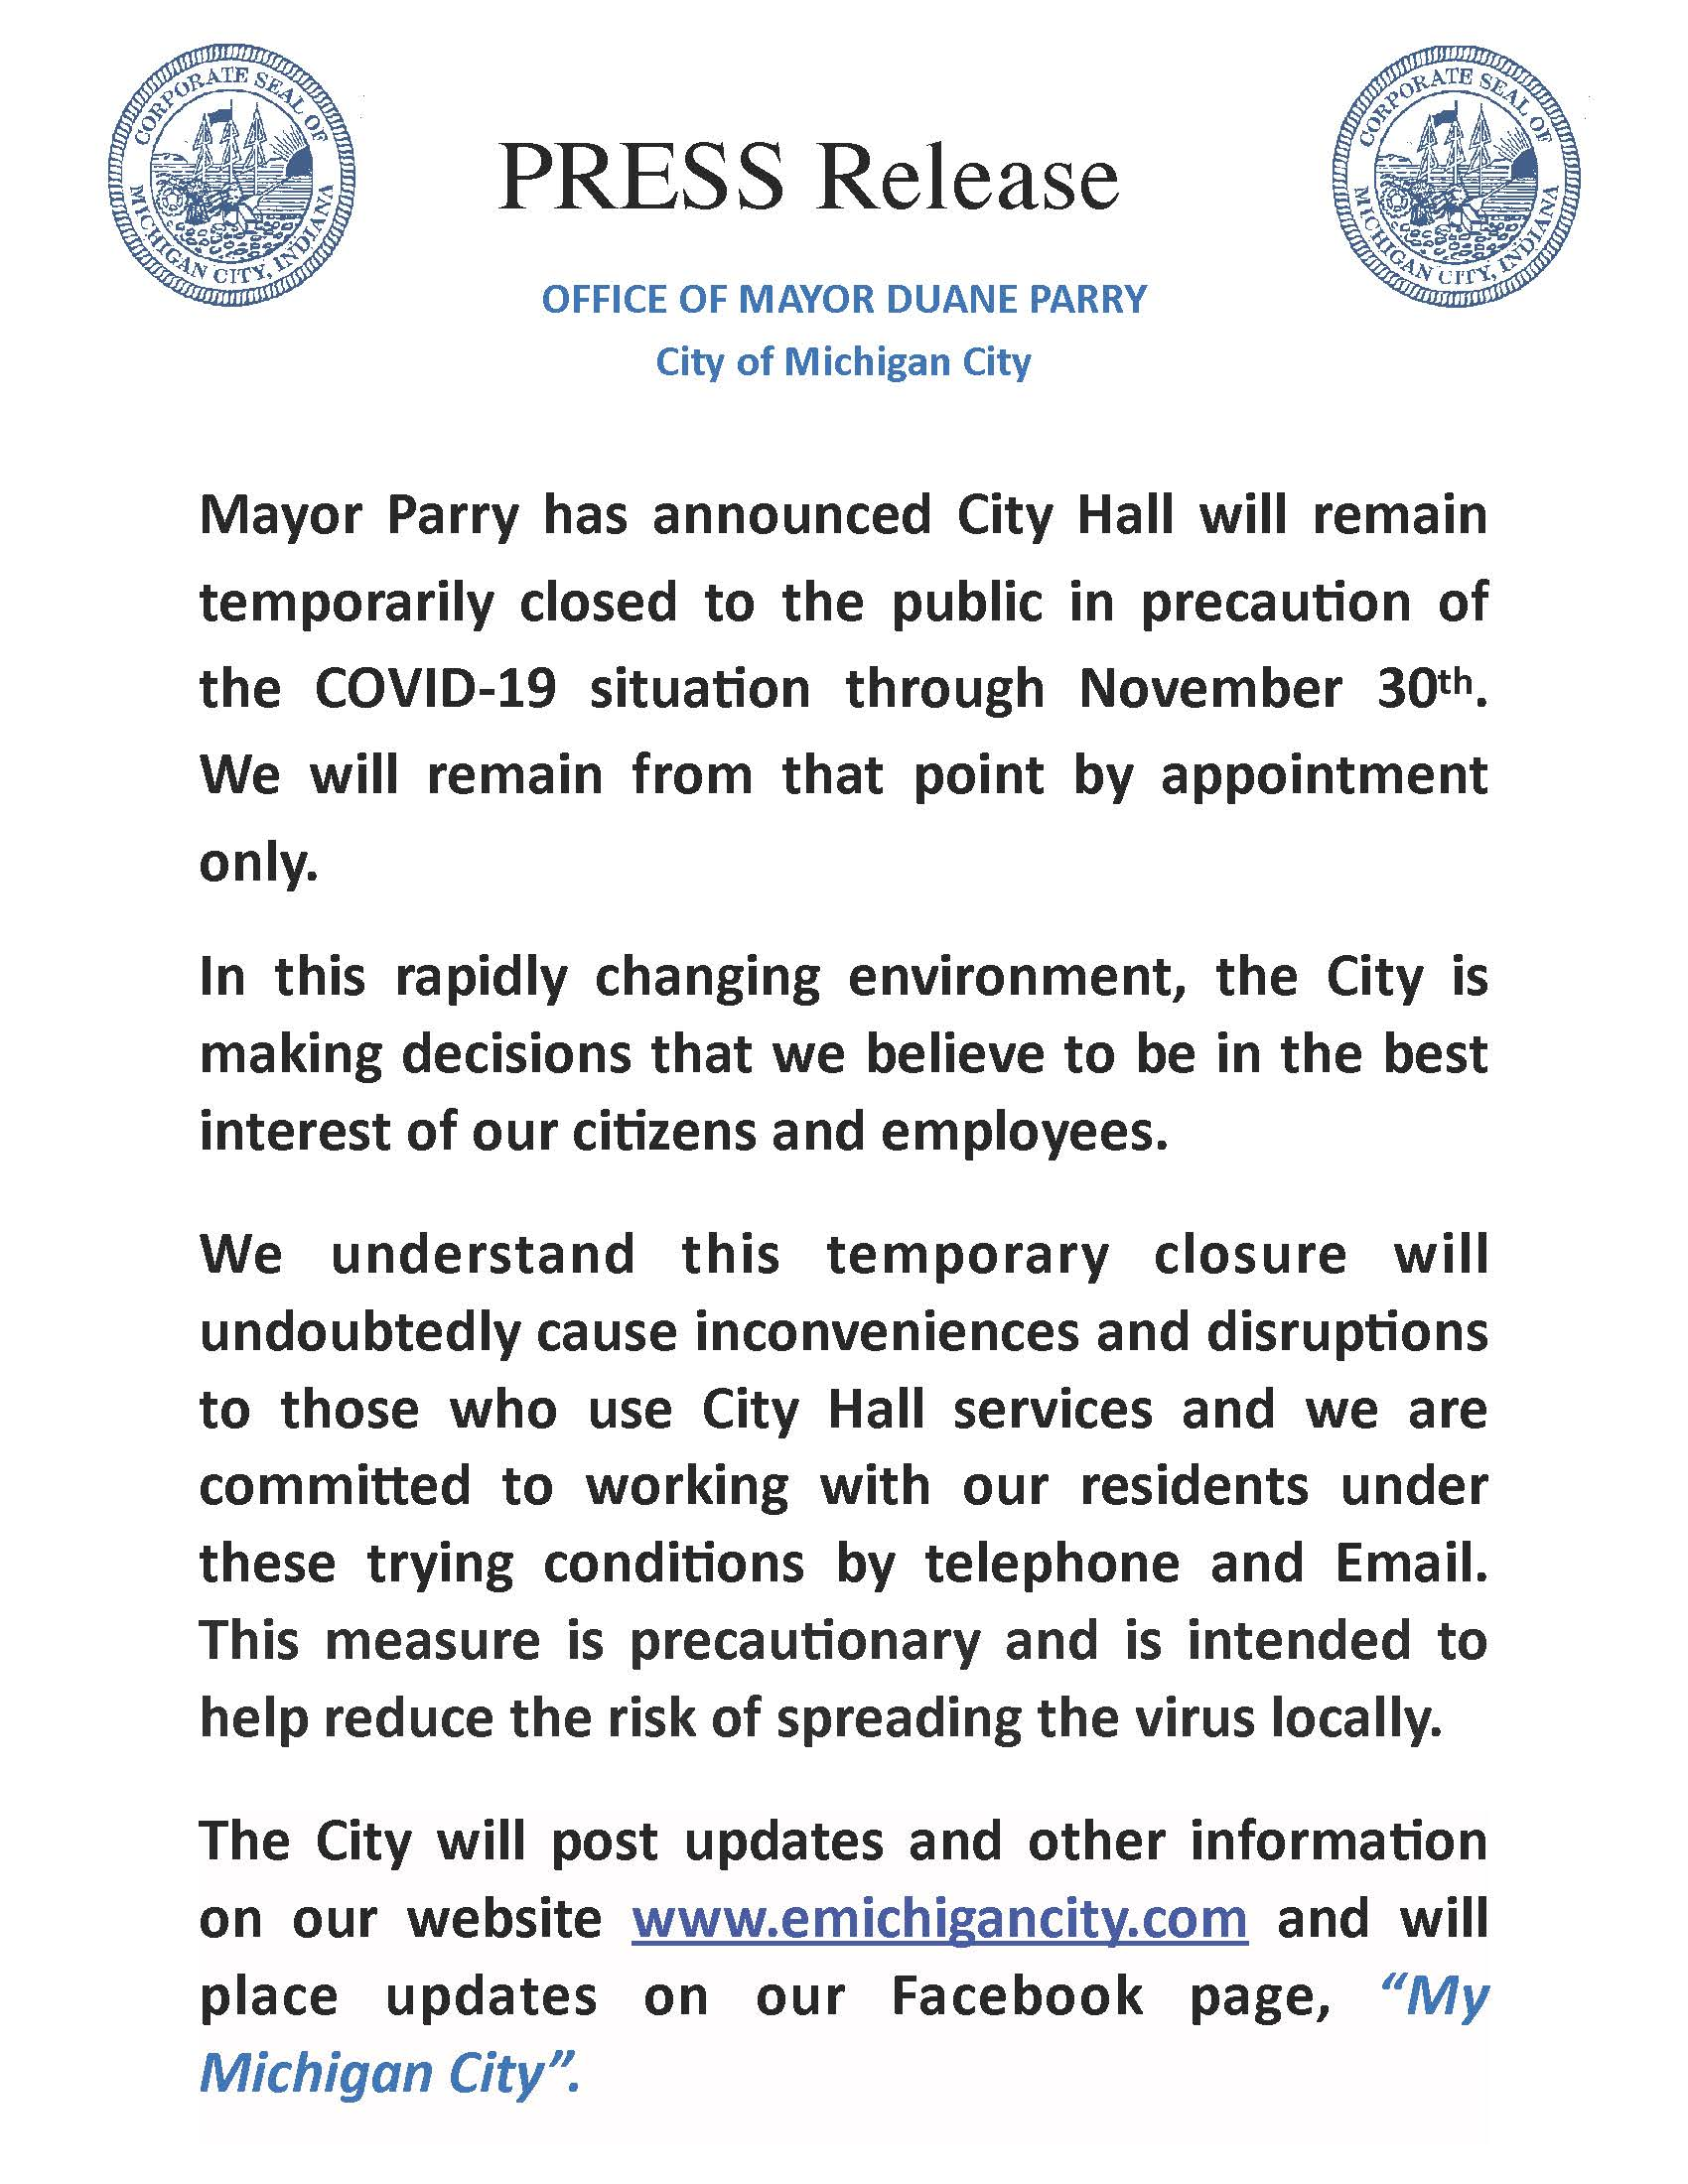 PRESS RELEASE FOR City Hall